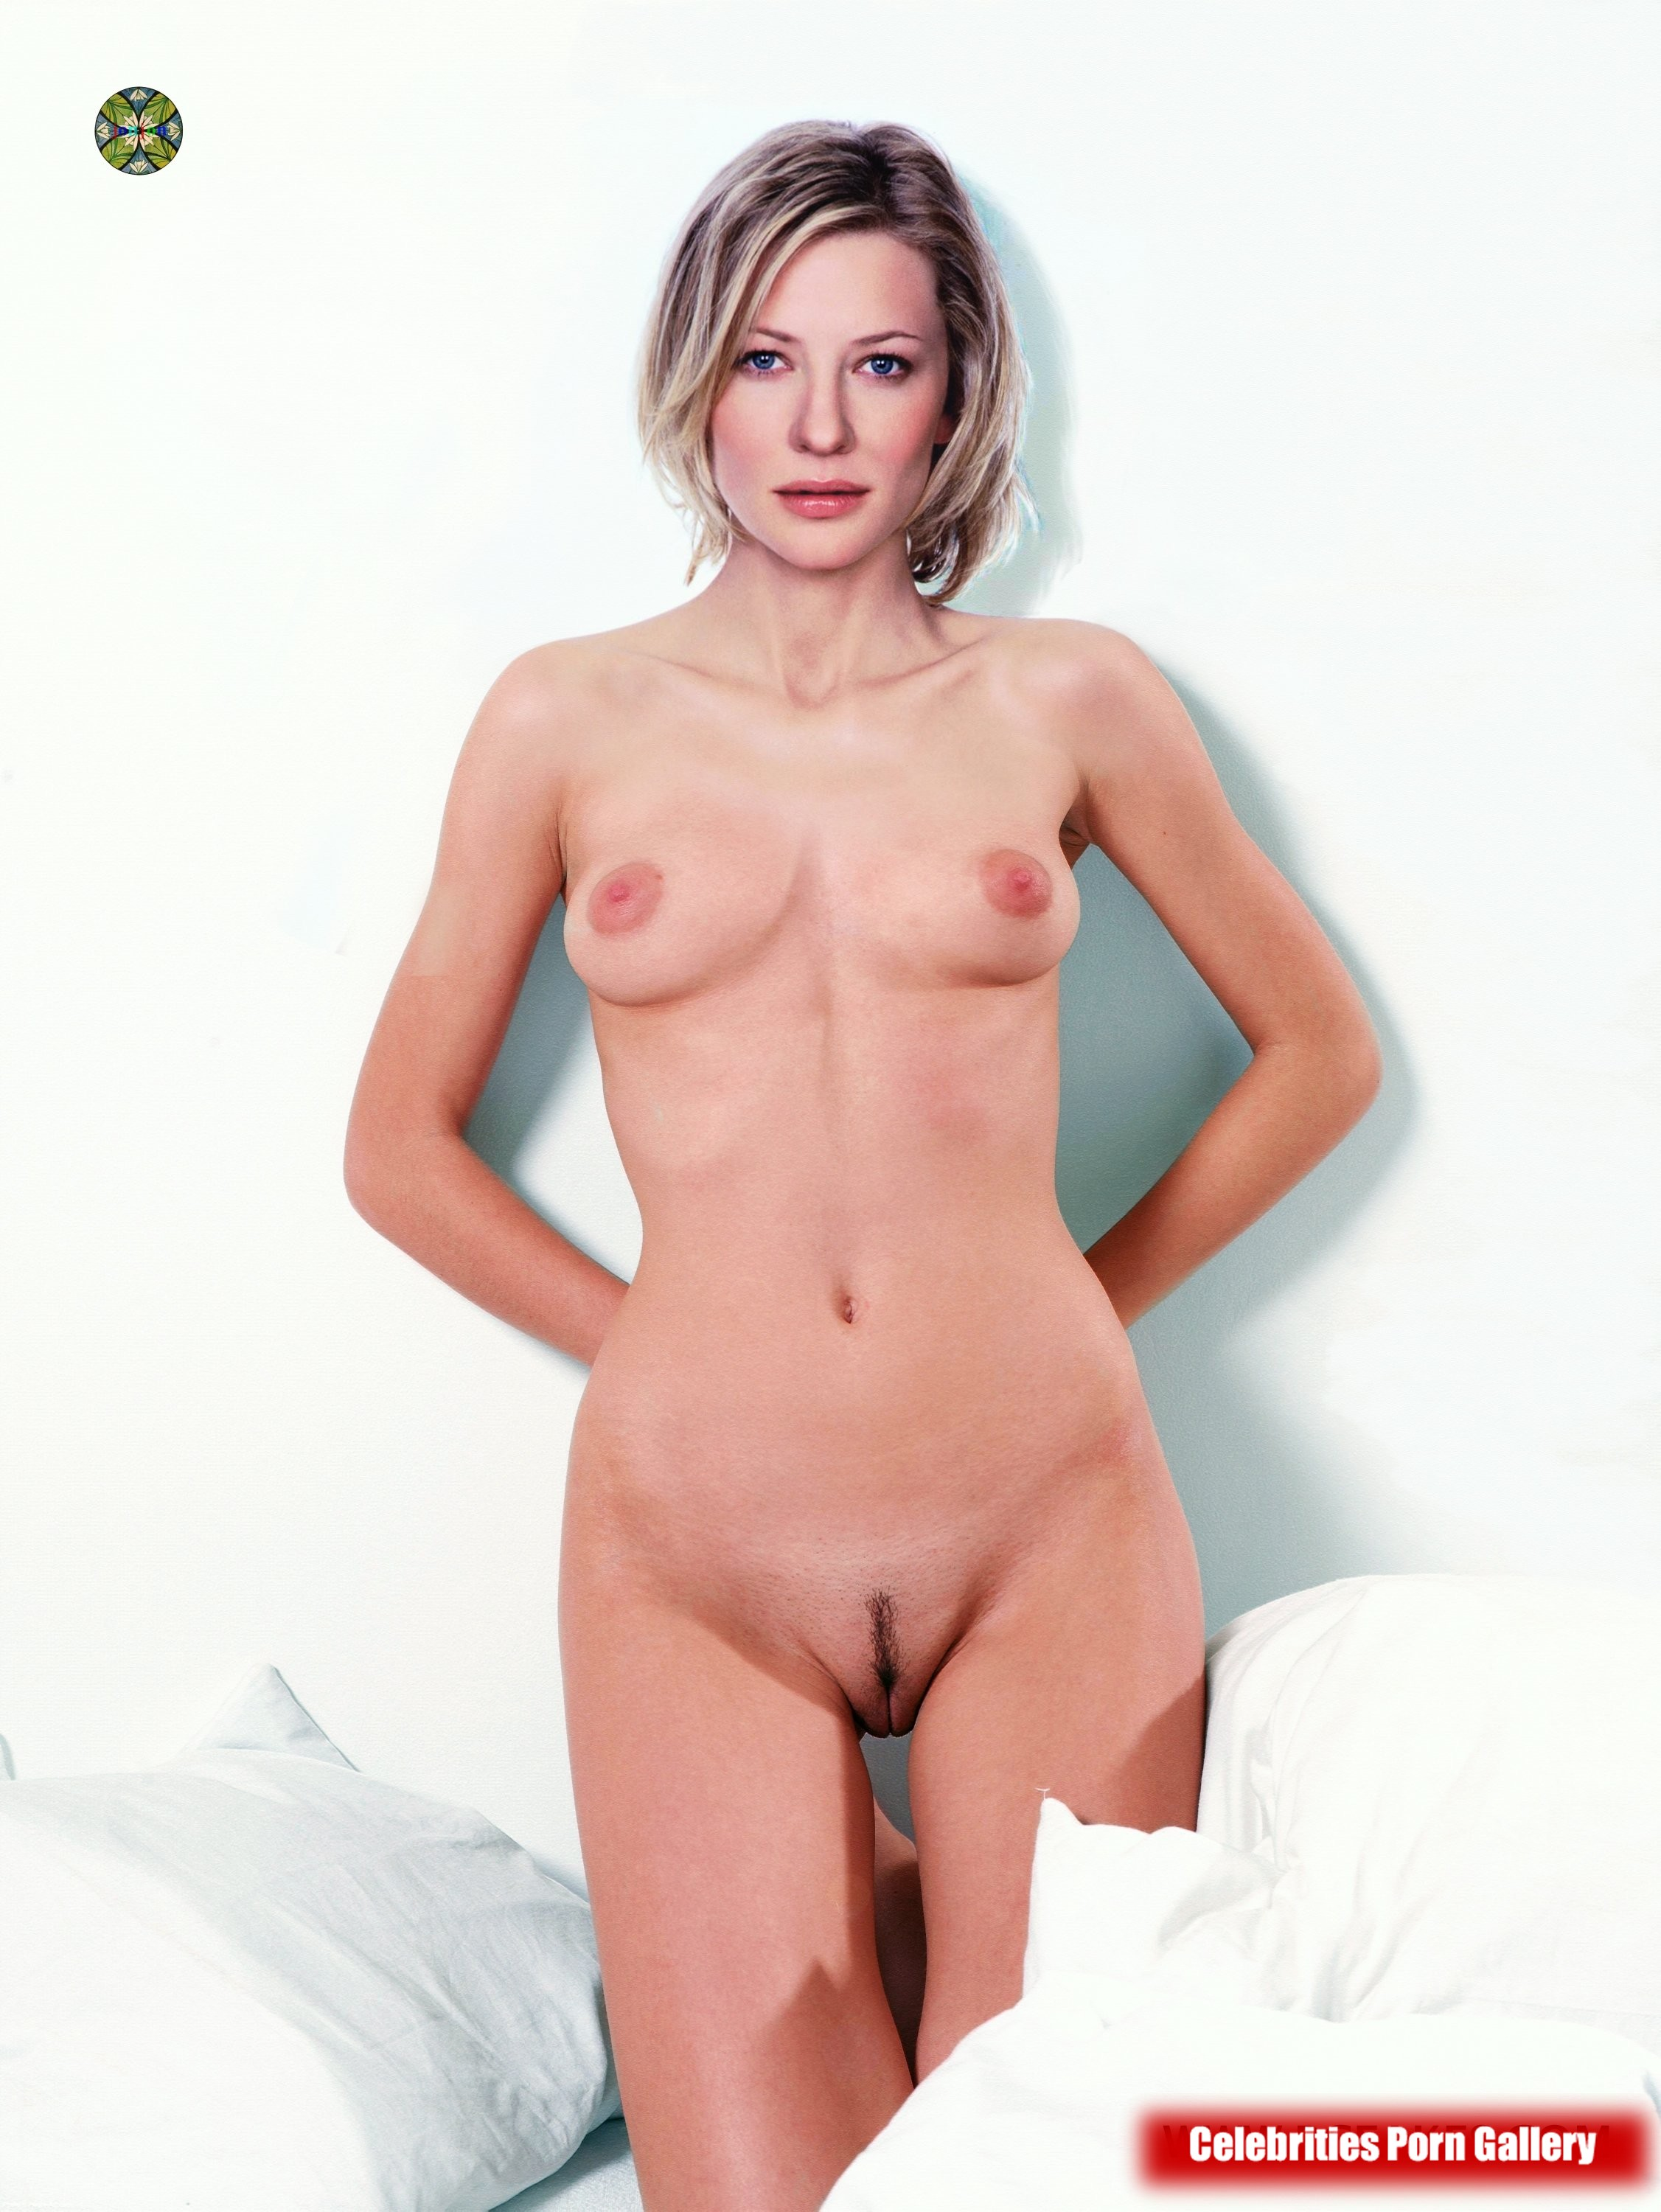 Cate Blanchett nude pics, images and galleries